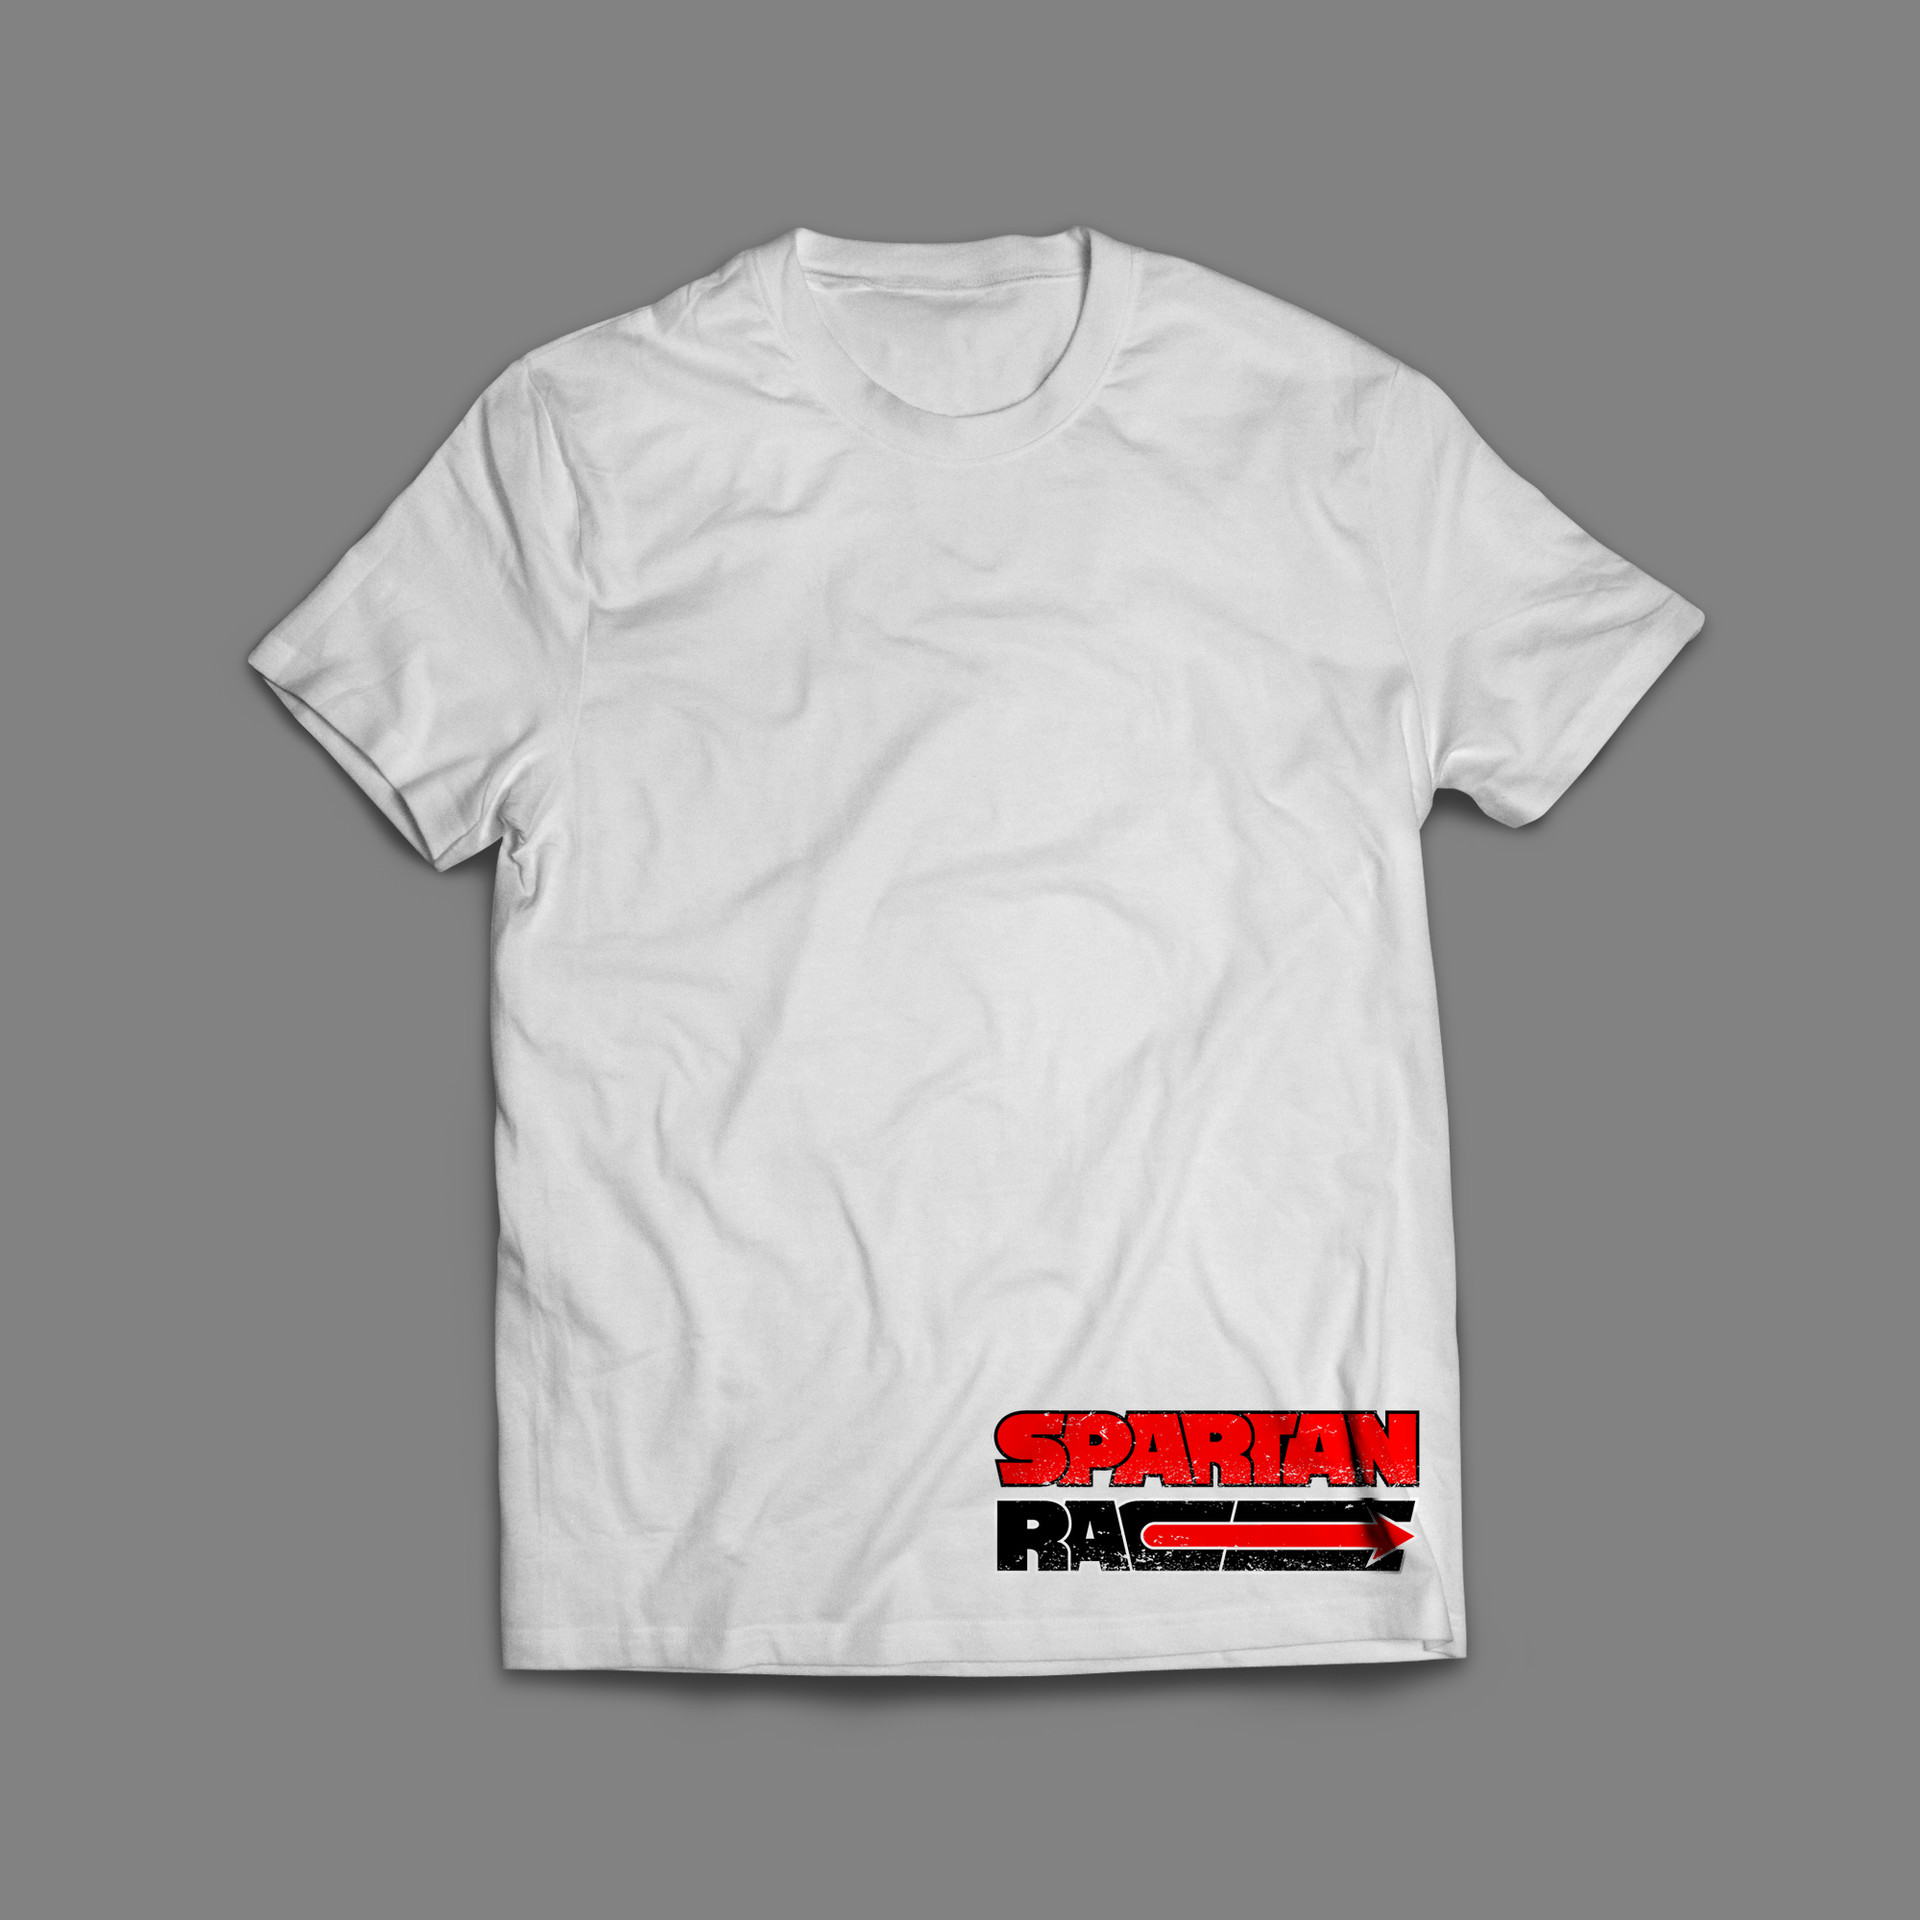 Richard t white jr spartanrace tshirtmockup 09